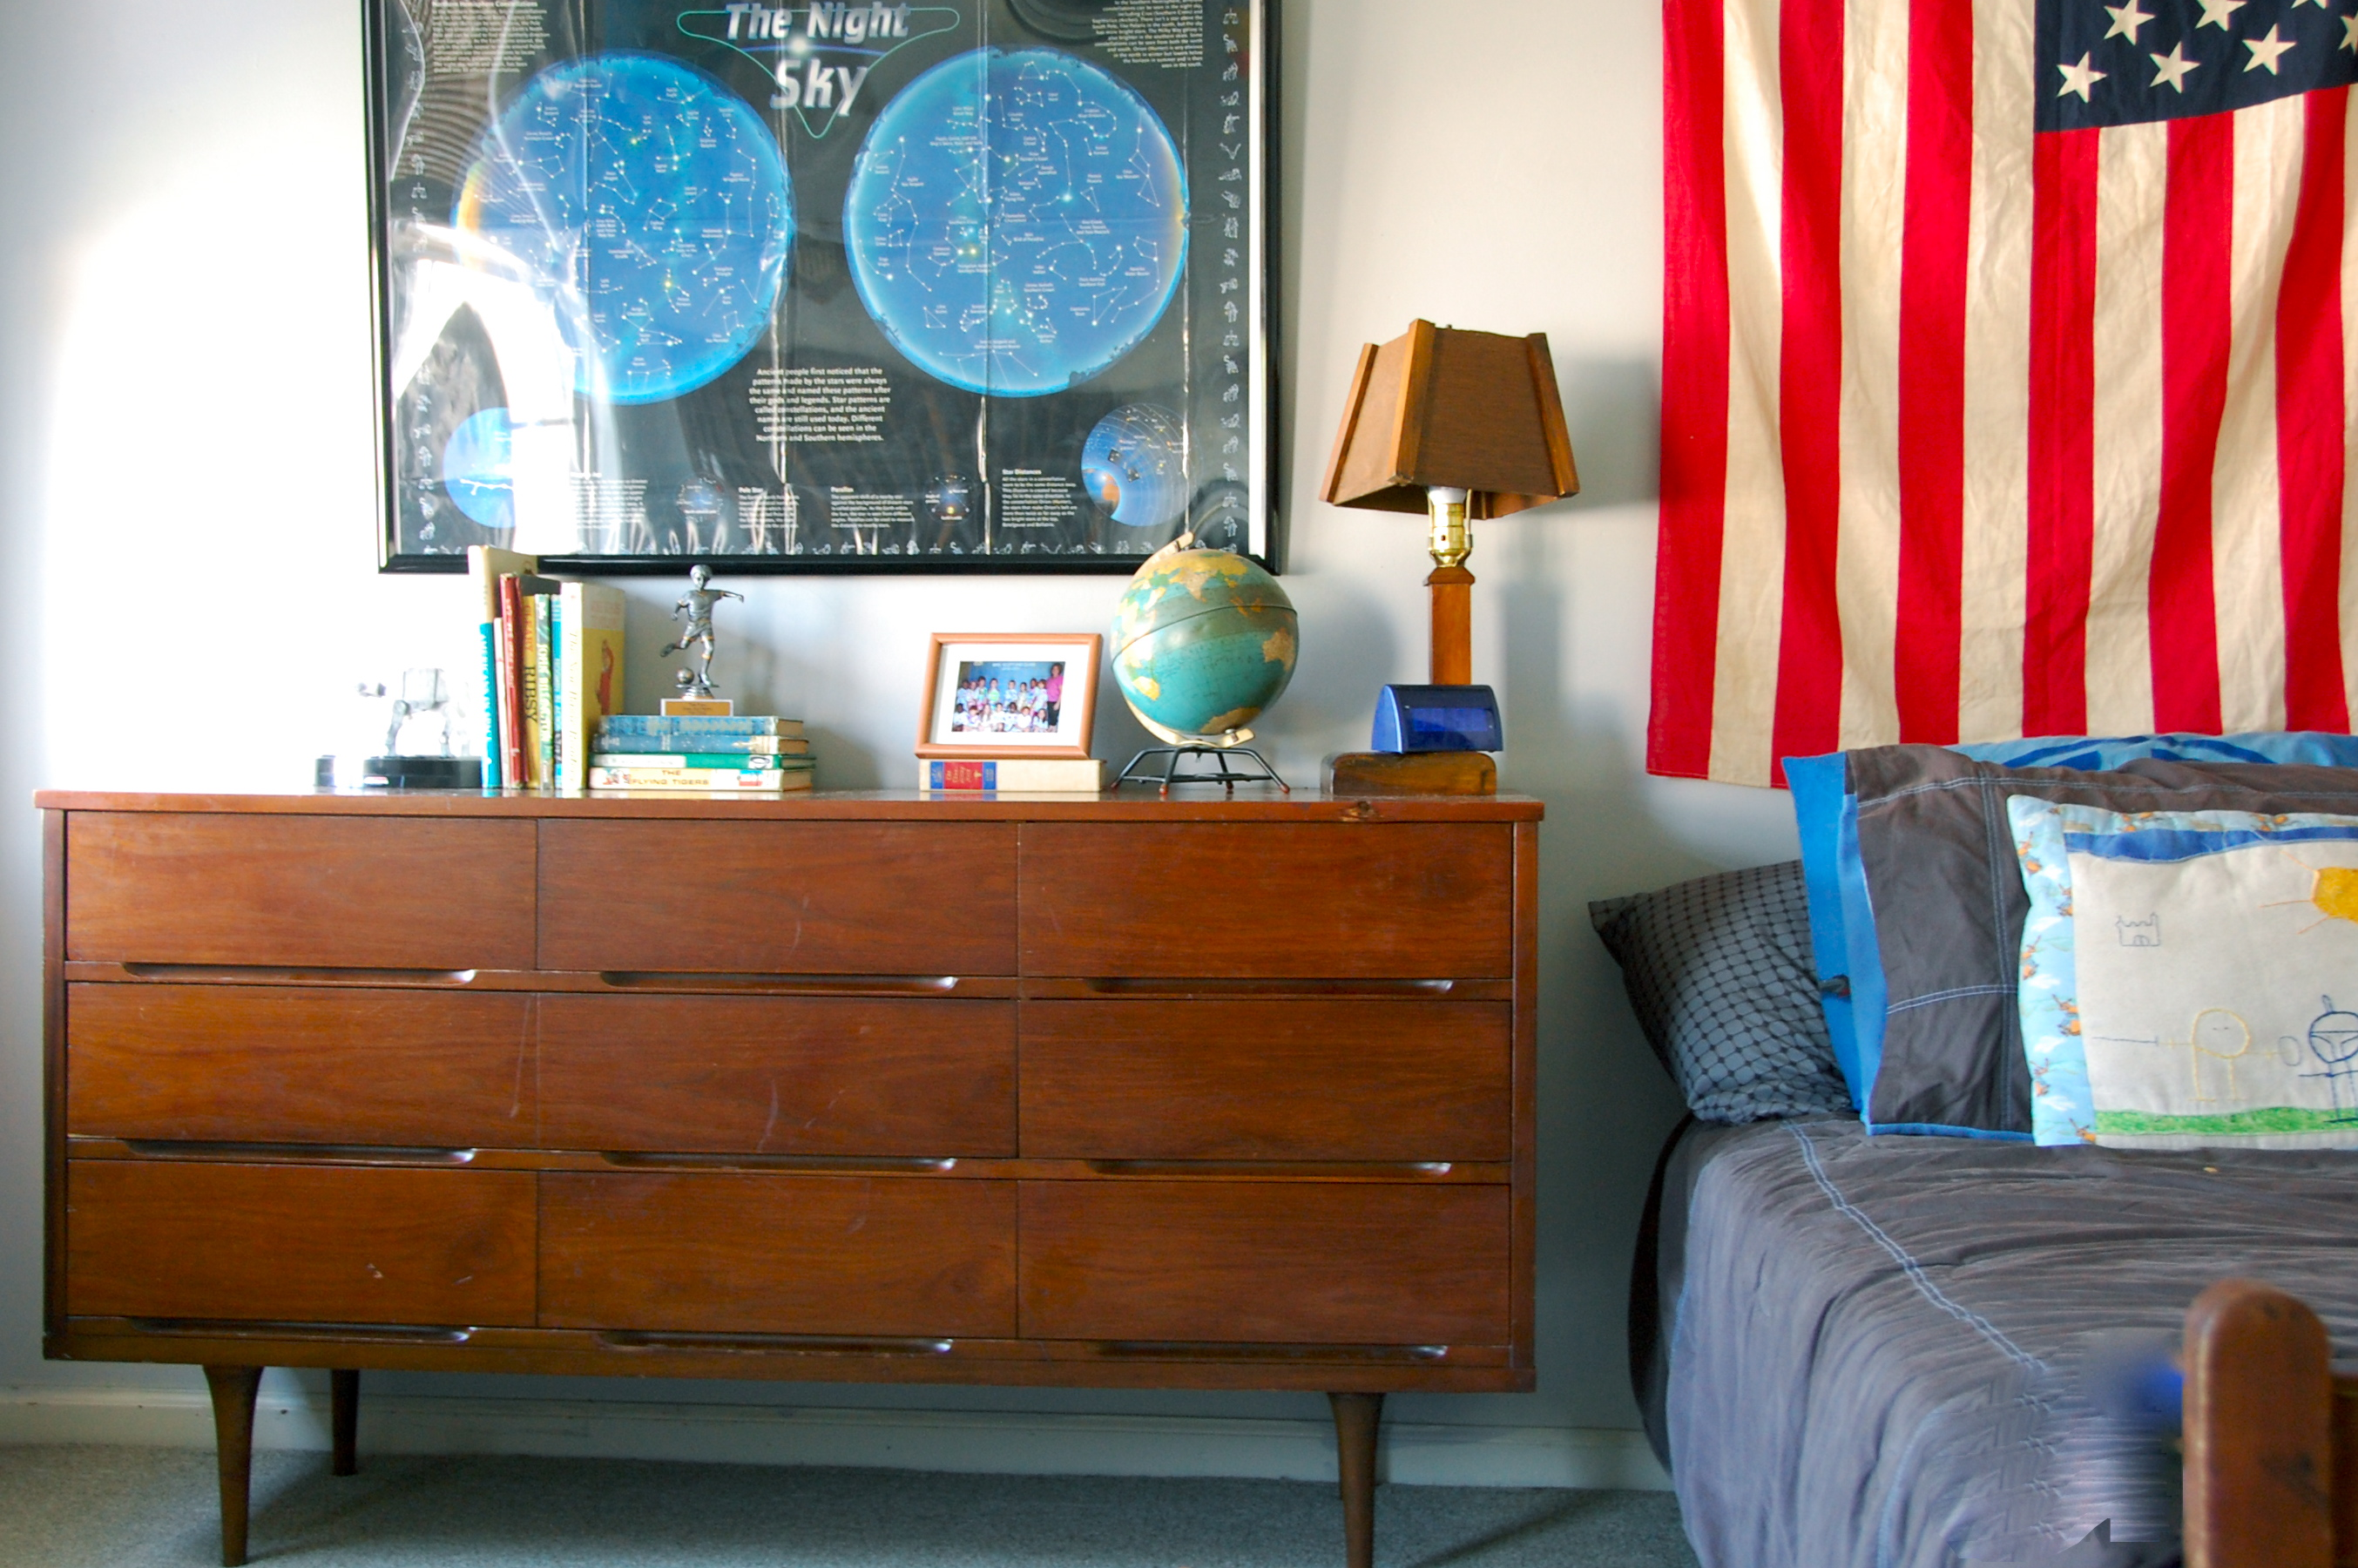 master bedroom ideas master bedroom ideas Decoration Ideas and Tips for a Boy's Bedroom 6a00d83451d45f69e2014e89c9d86f970d pi